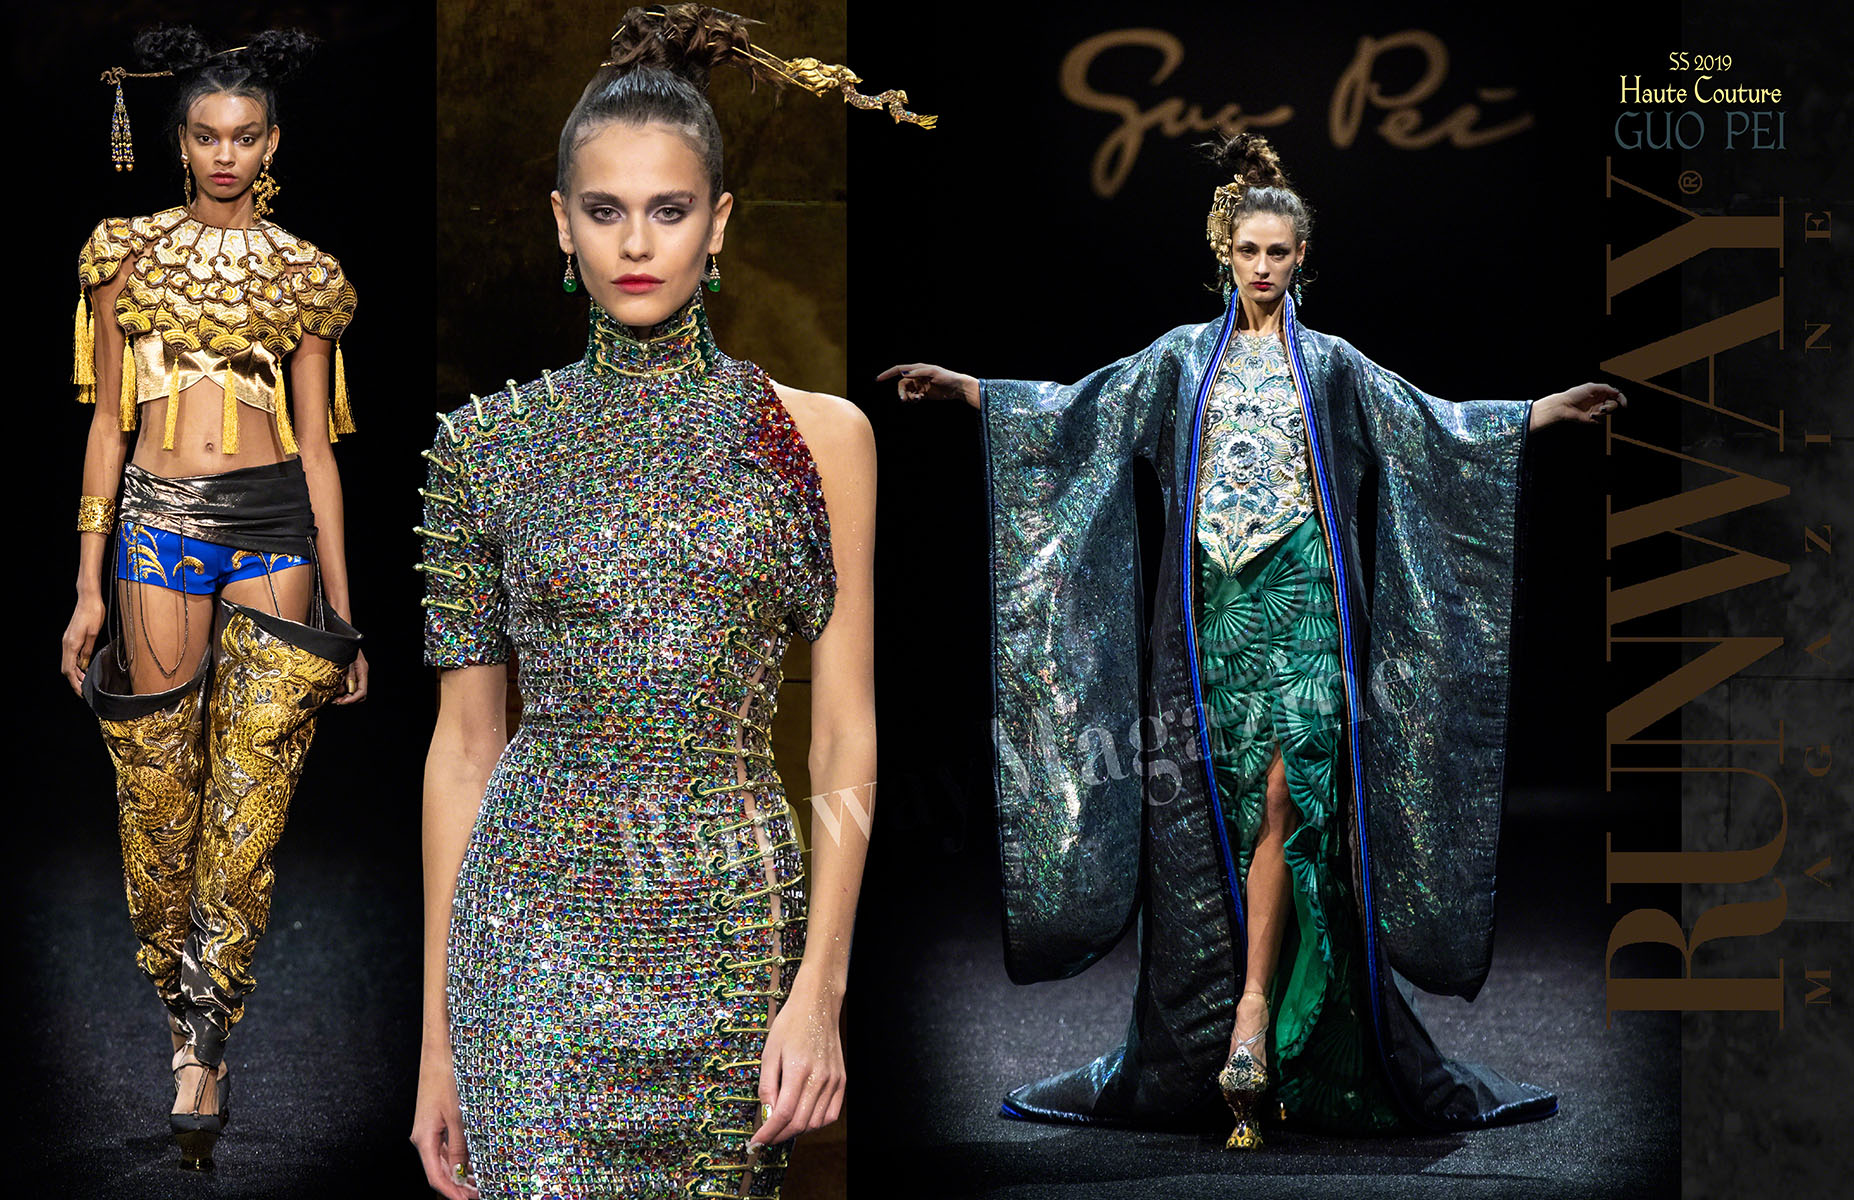 GUO PEI Haute Couture Spring Summer 2019 by Runway Magazine